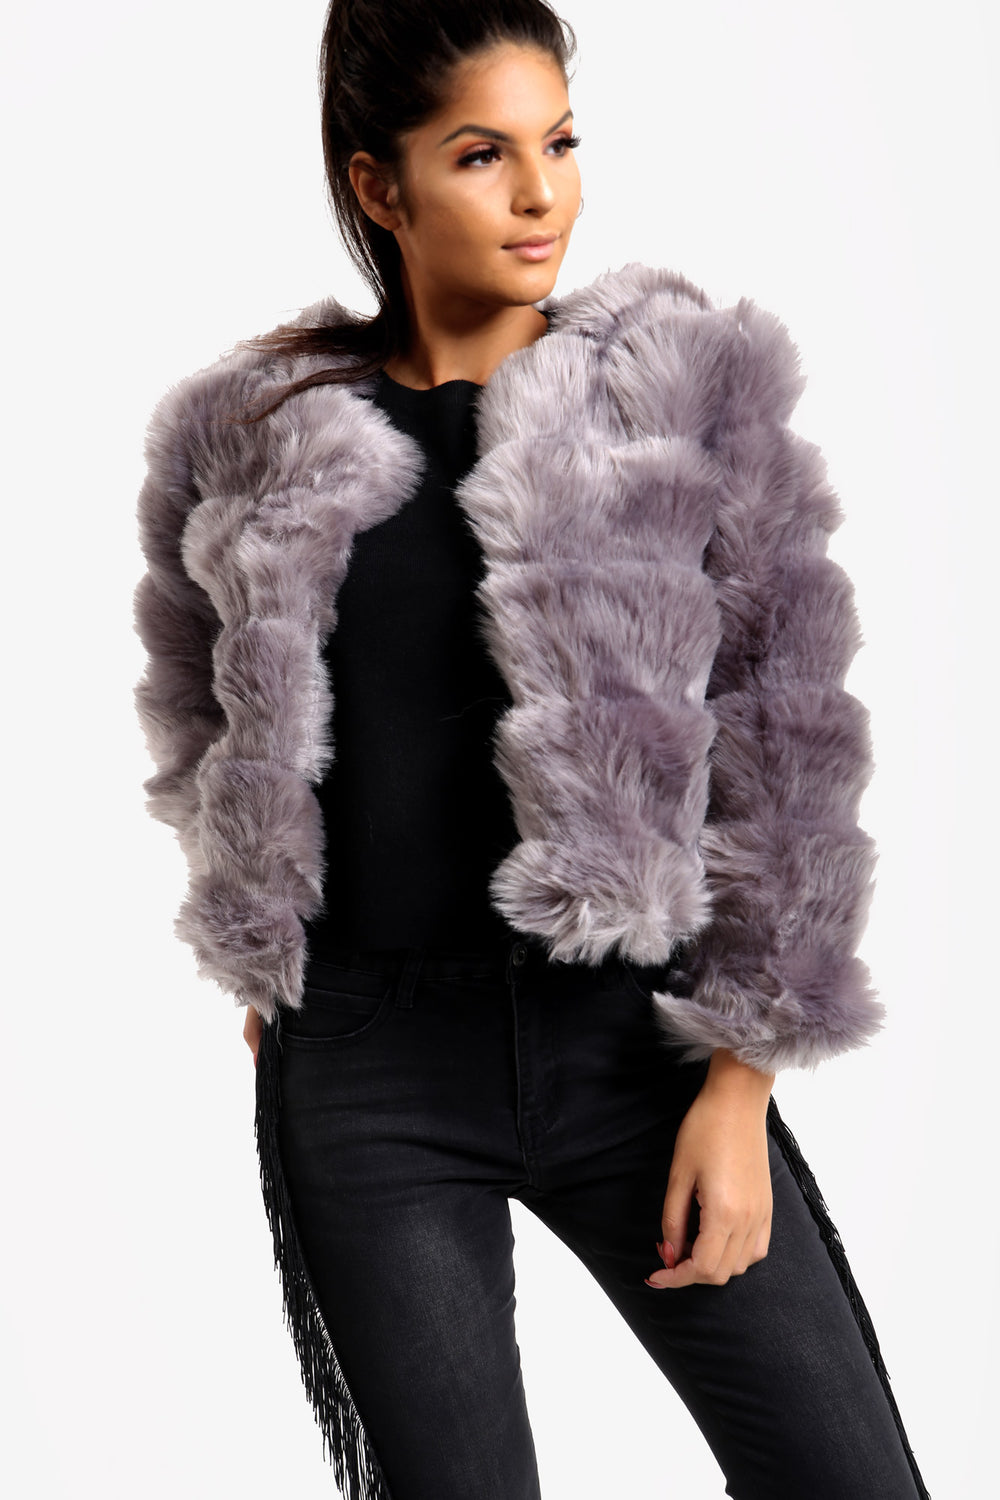 Silver Grey Faux Fur Coat